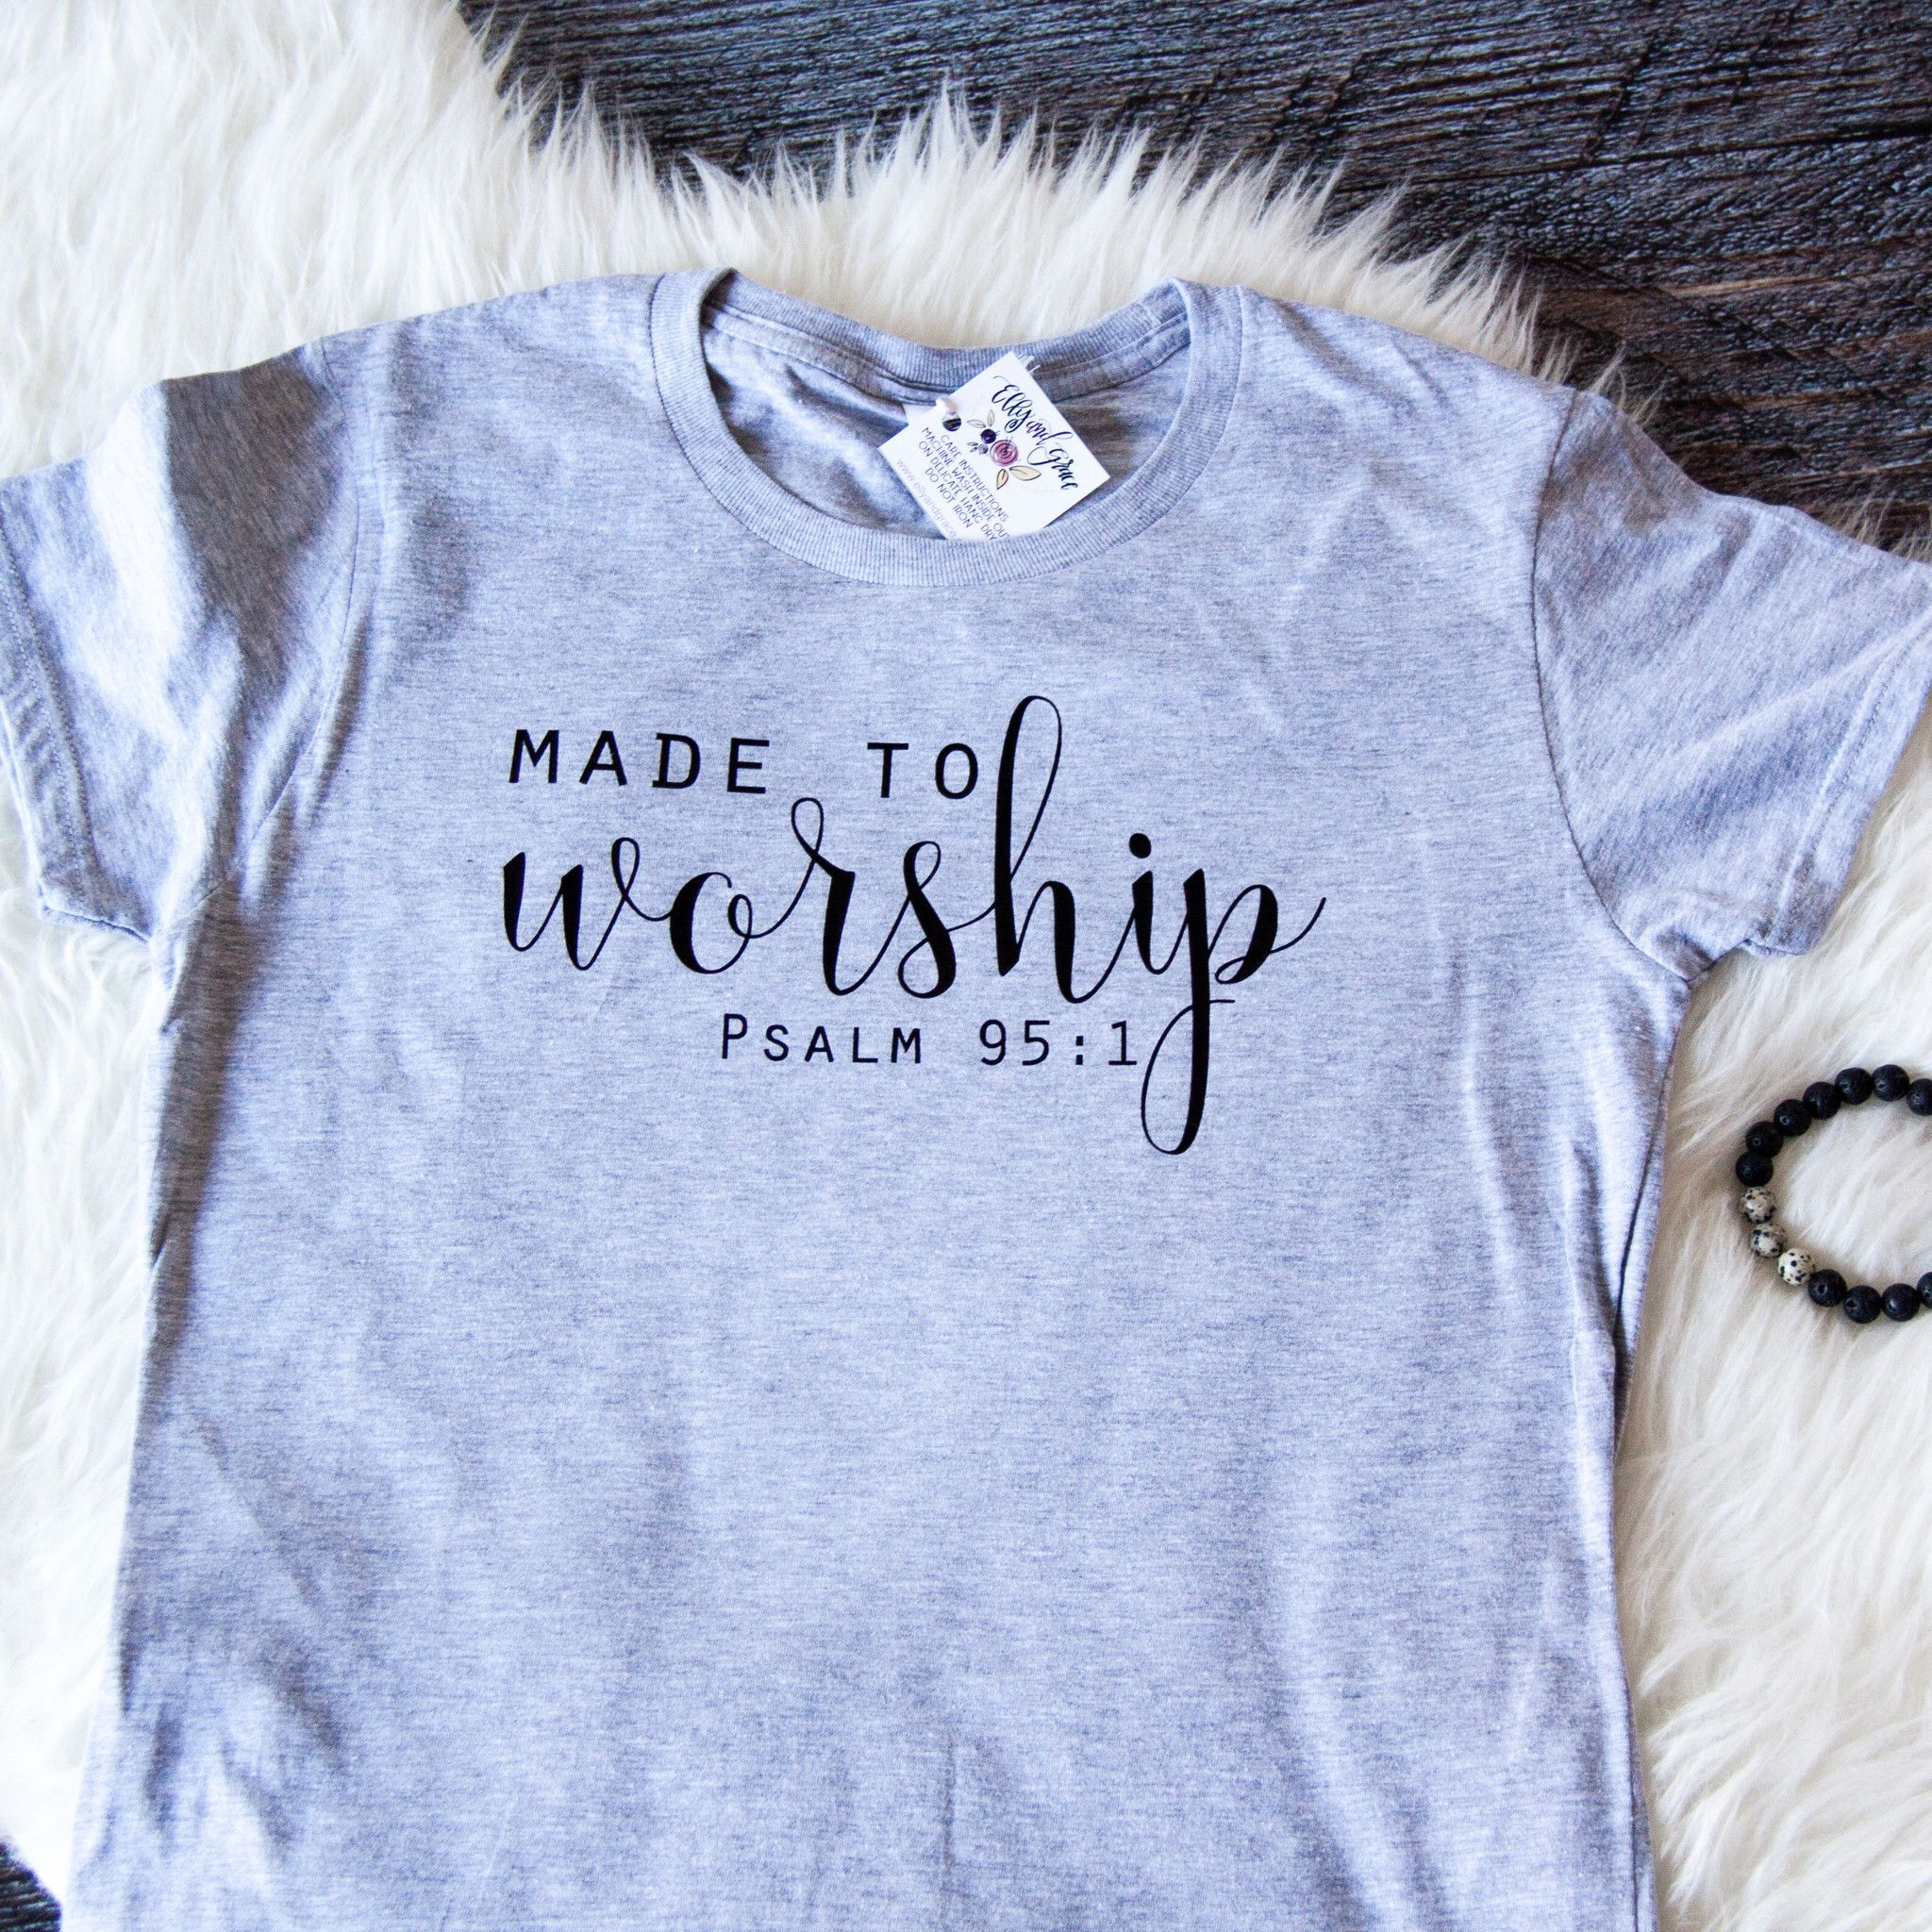 0dcee096 We were made to worship. this shirt is perfect for wearing to church, bible  study or choir practice! Shown in the heather grey with black font.